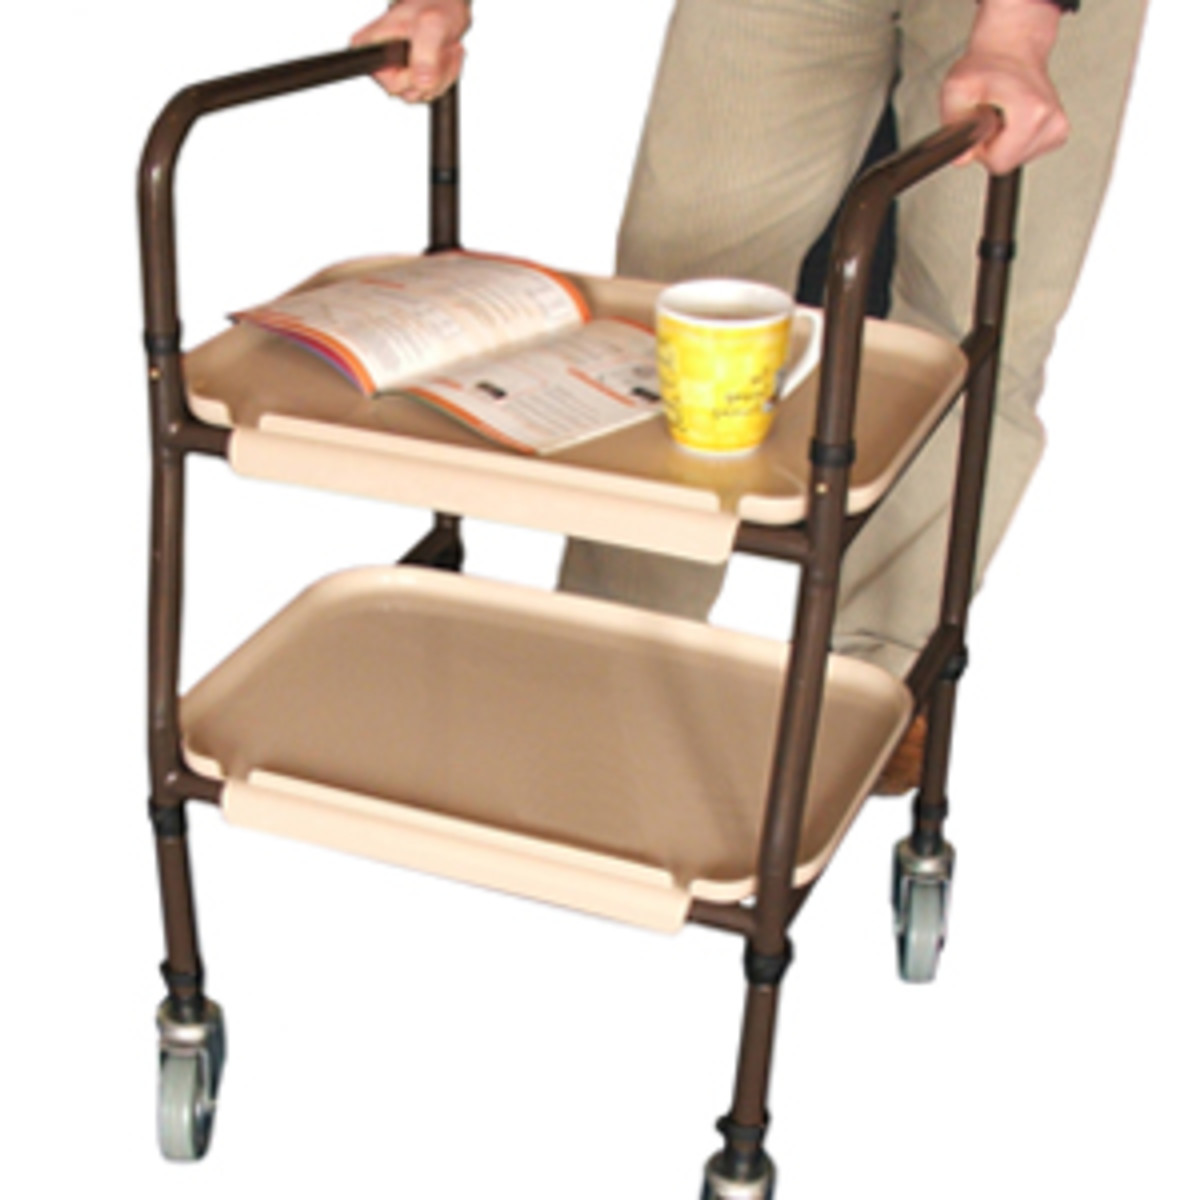 a kitchen trolley in action